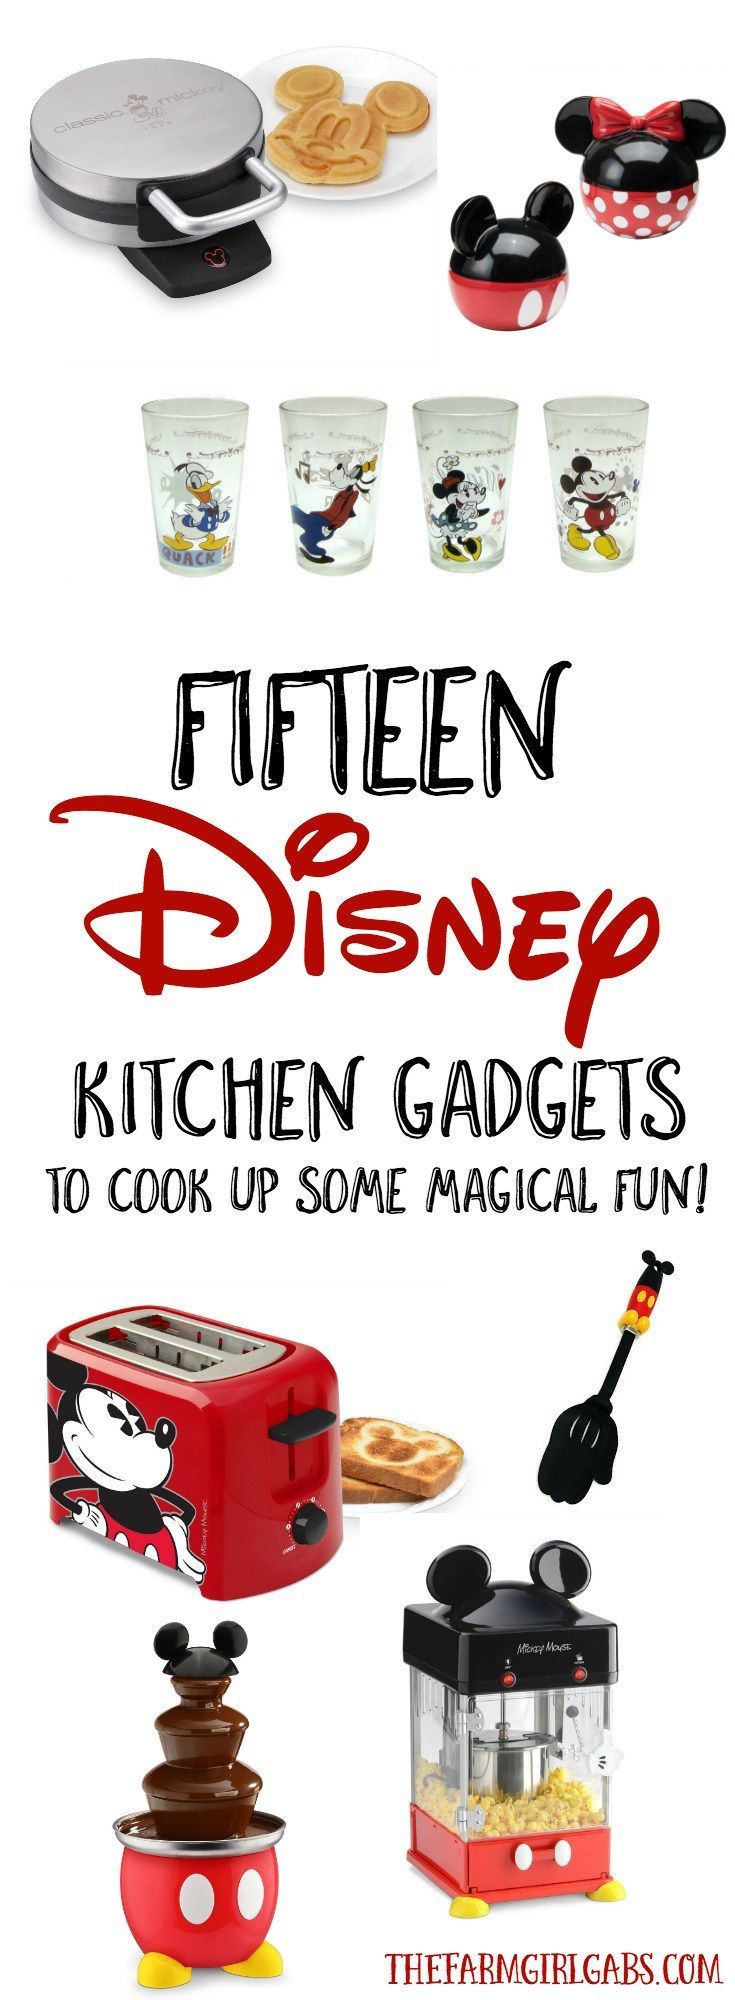 15 Disney Kitchen Gadgets To Cook Up Some Magical Fun - The Farm Girl Gabs